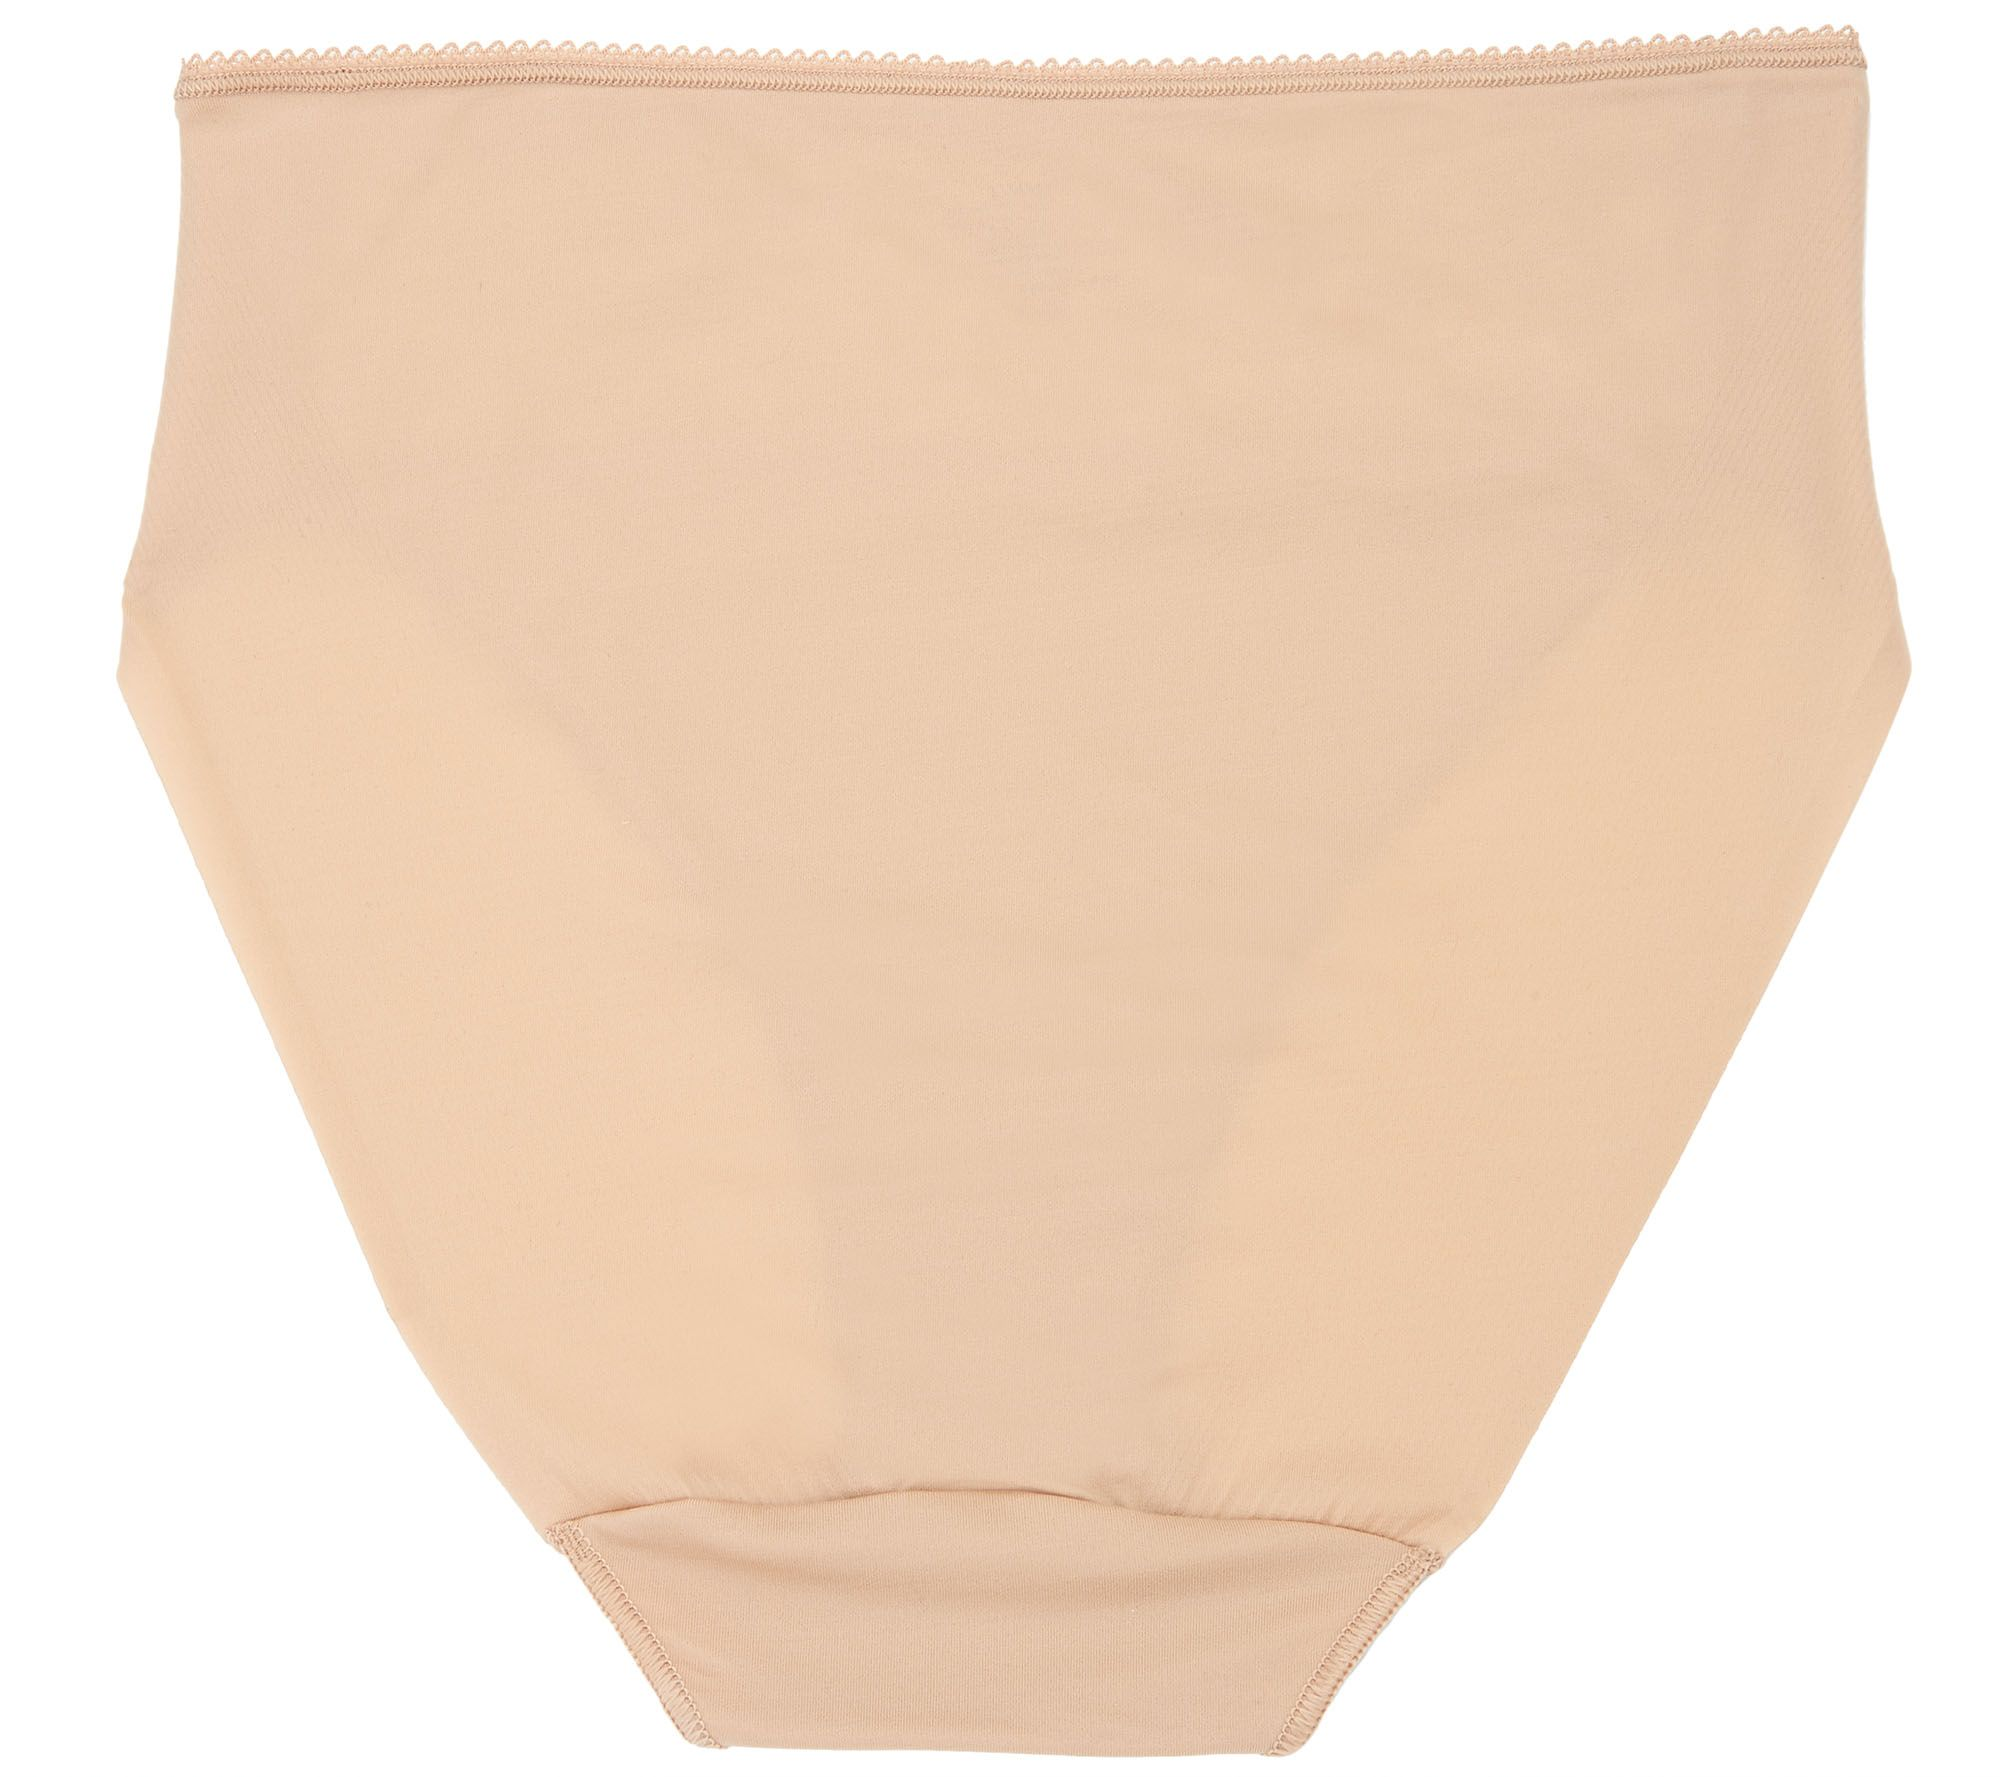 559314d4e9 Soma Vanishing Edge Microfiber Panties Set of 5 - Page 1 — QVC.com